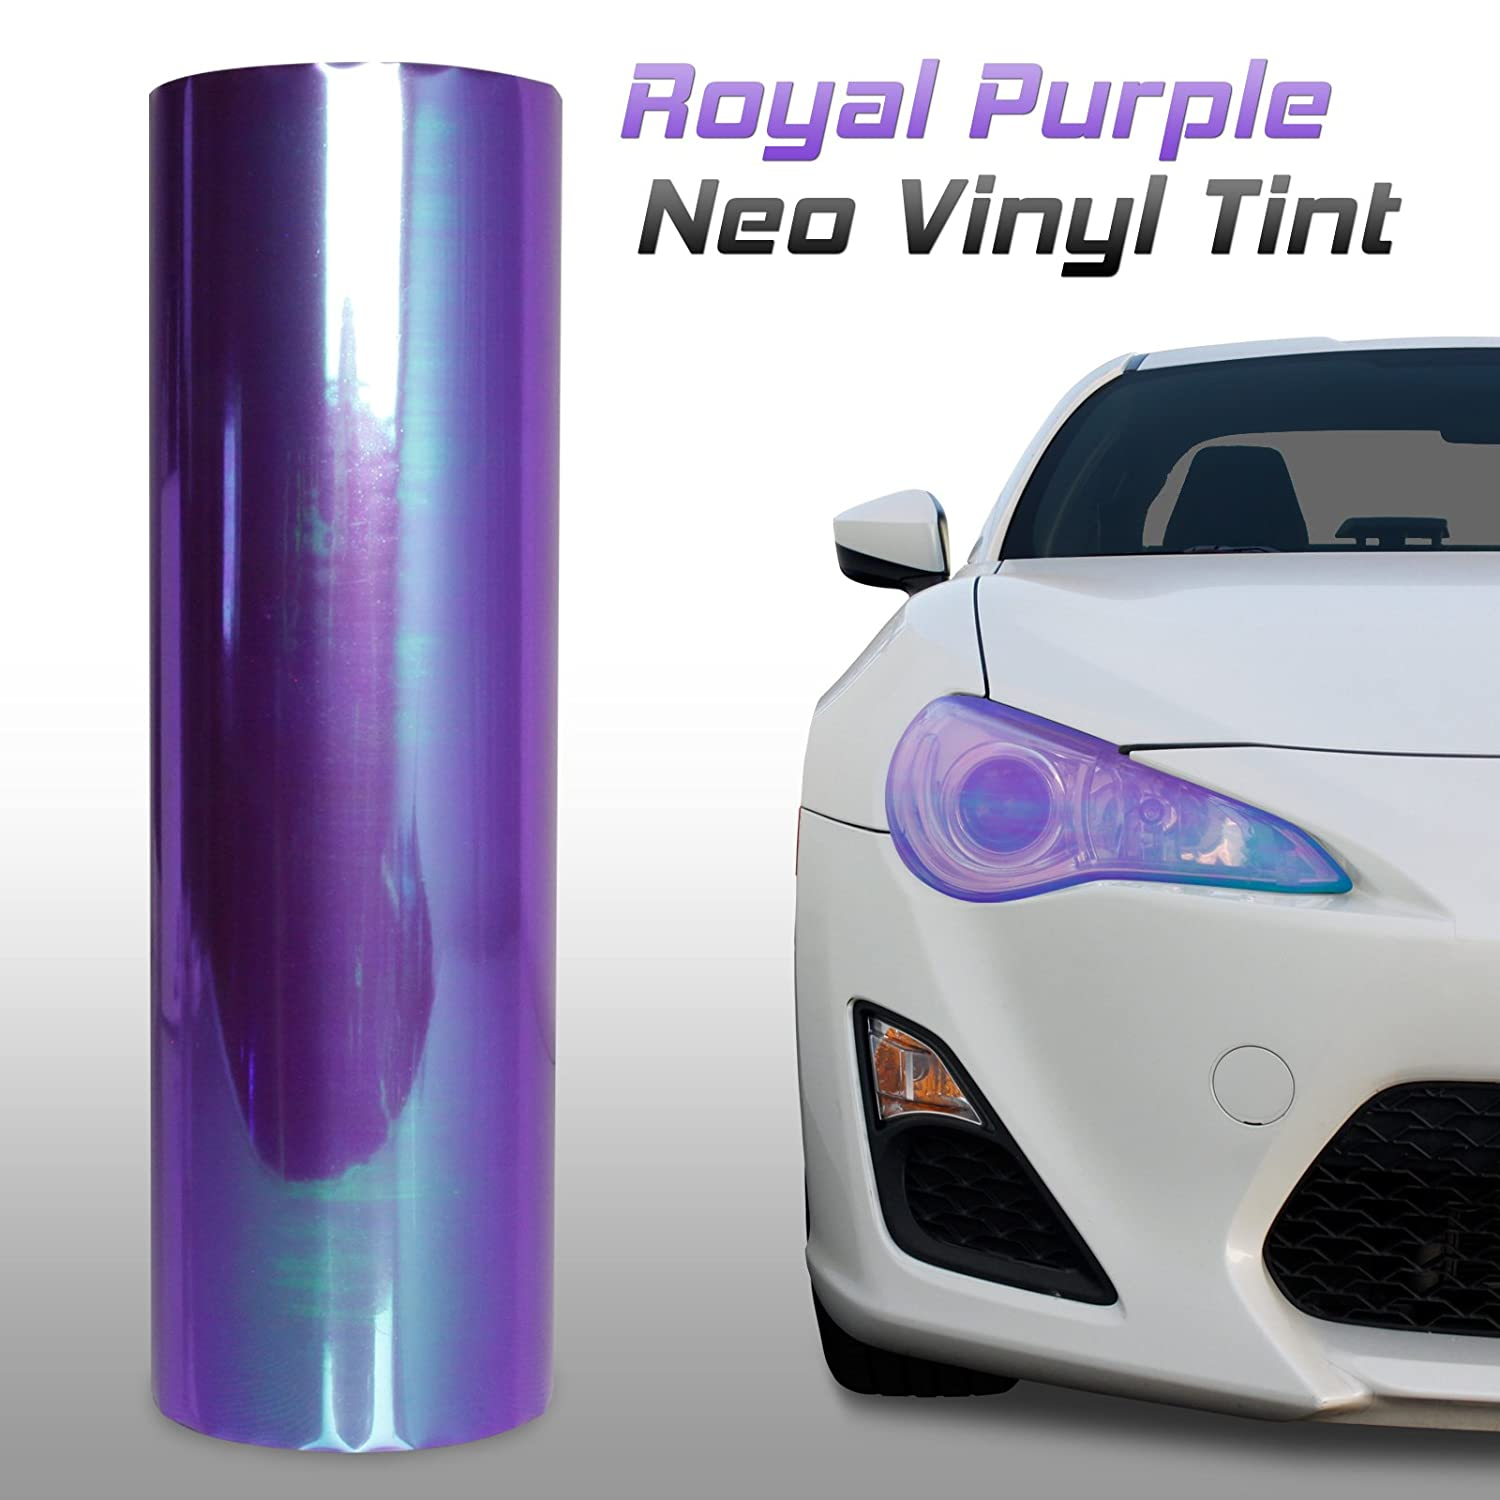 Optix Chameleon Neo Chrome Headlight Fog Light Taillight Vinyl Tint Film Purple 12x60 in 1x5 Ft Project RA